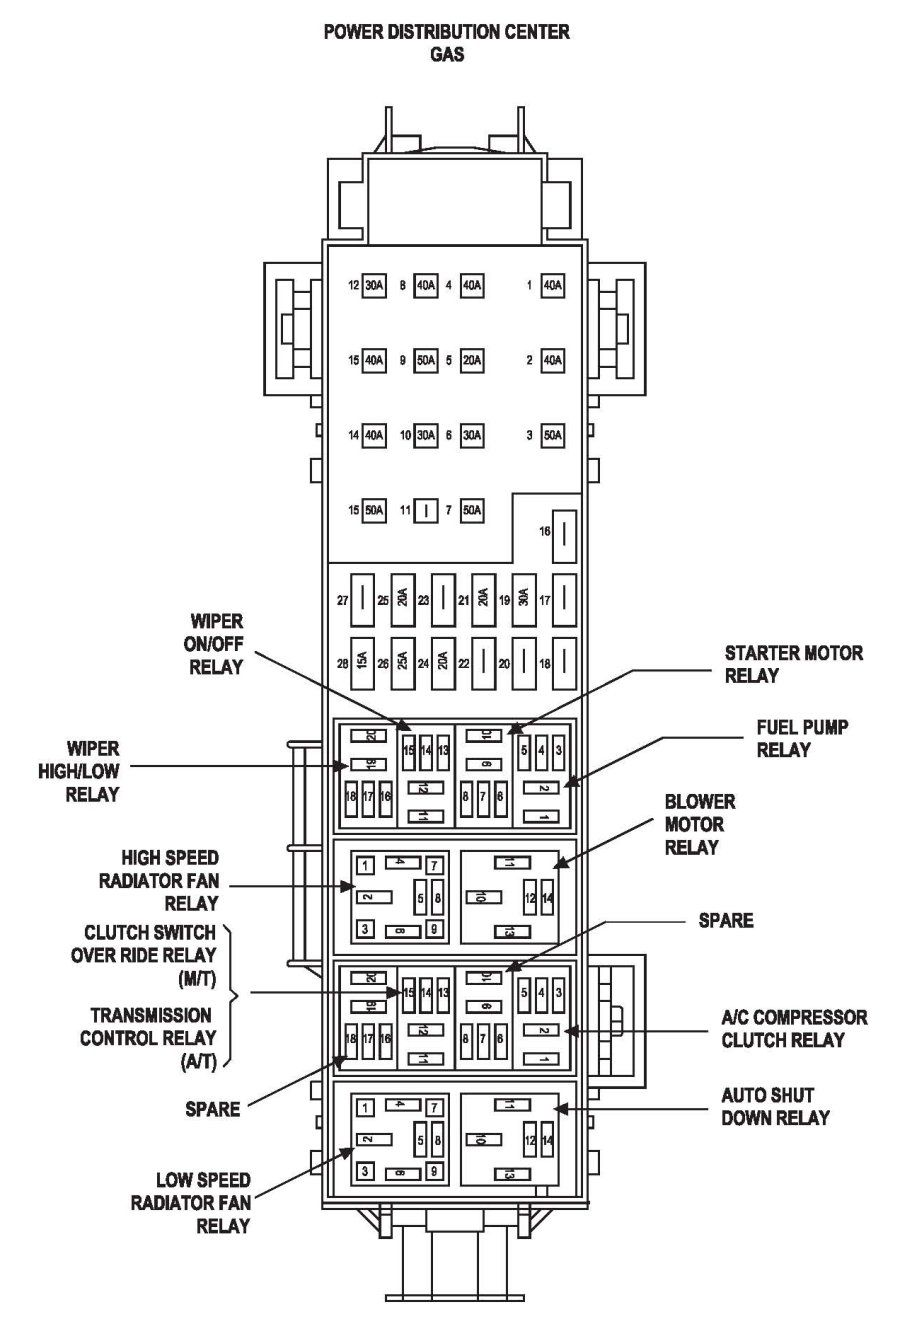 b3536c3739783eb19f827744cc42c3c4 jeep liberty fuse box diagram image details jeep liberty jeep liberty fuse box diagram at gsmx.co